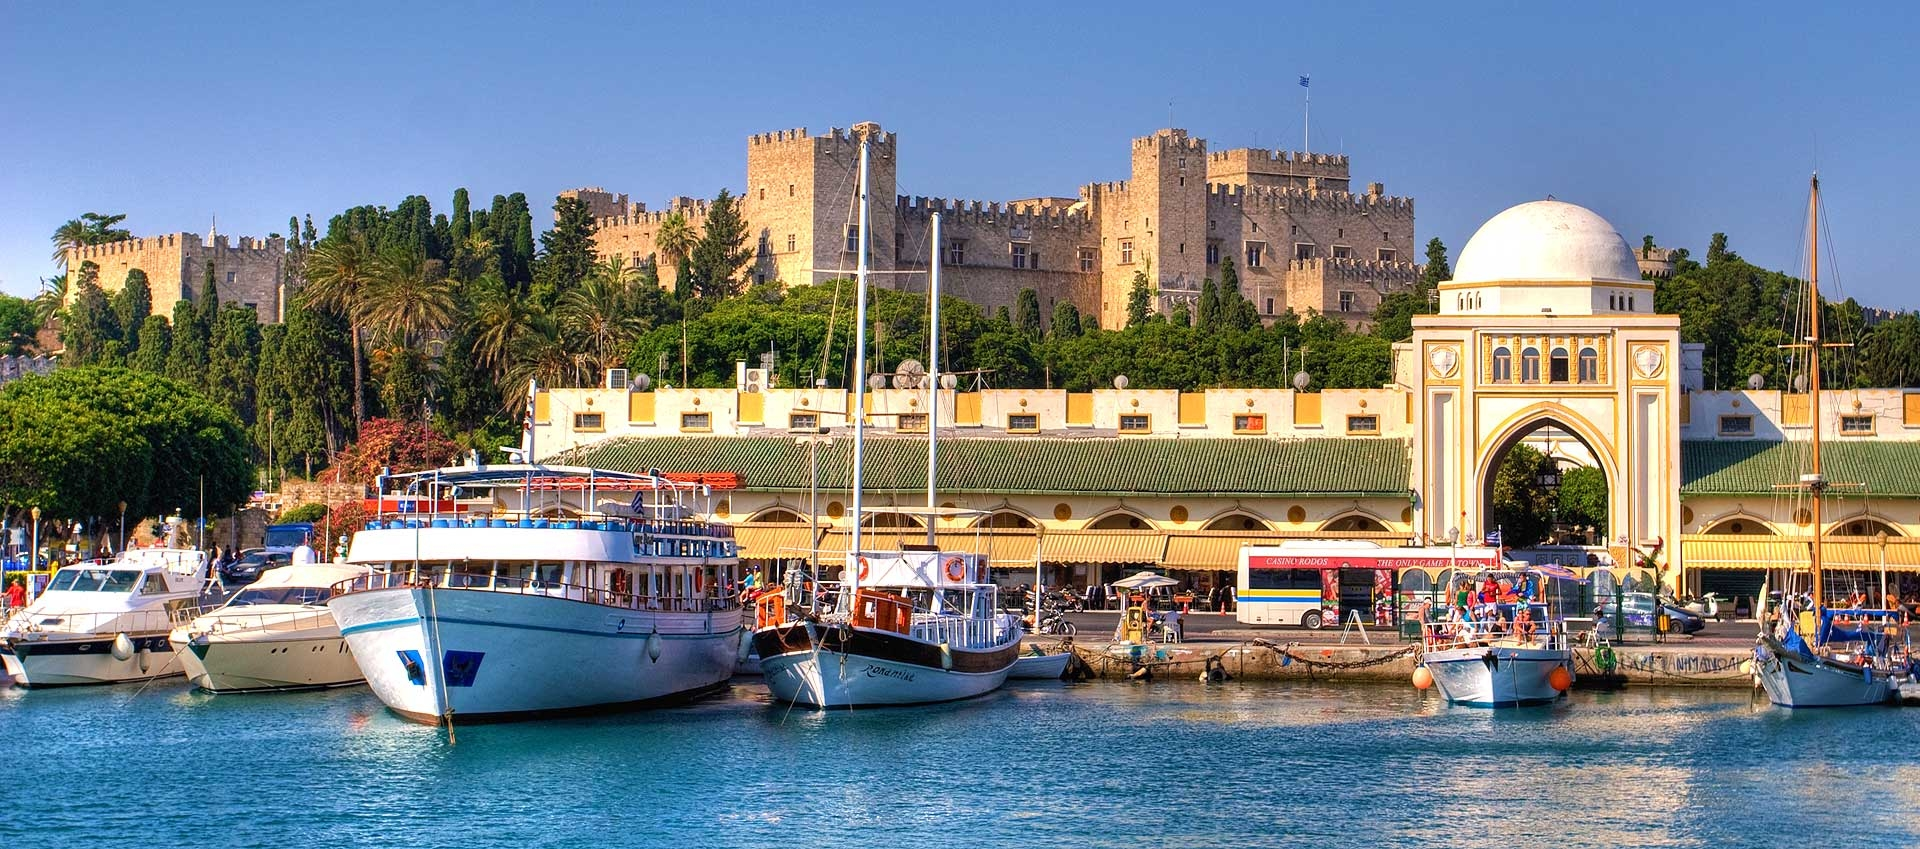 Holiday in Rhodes, Greece